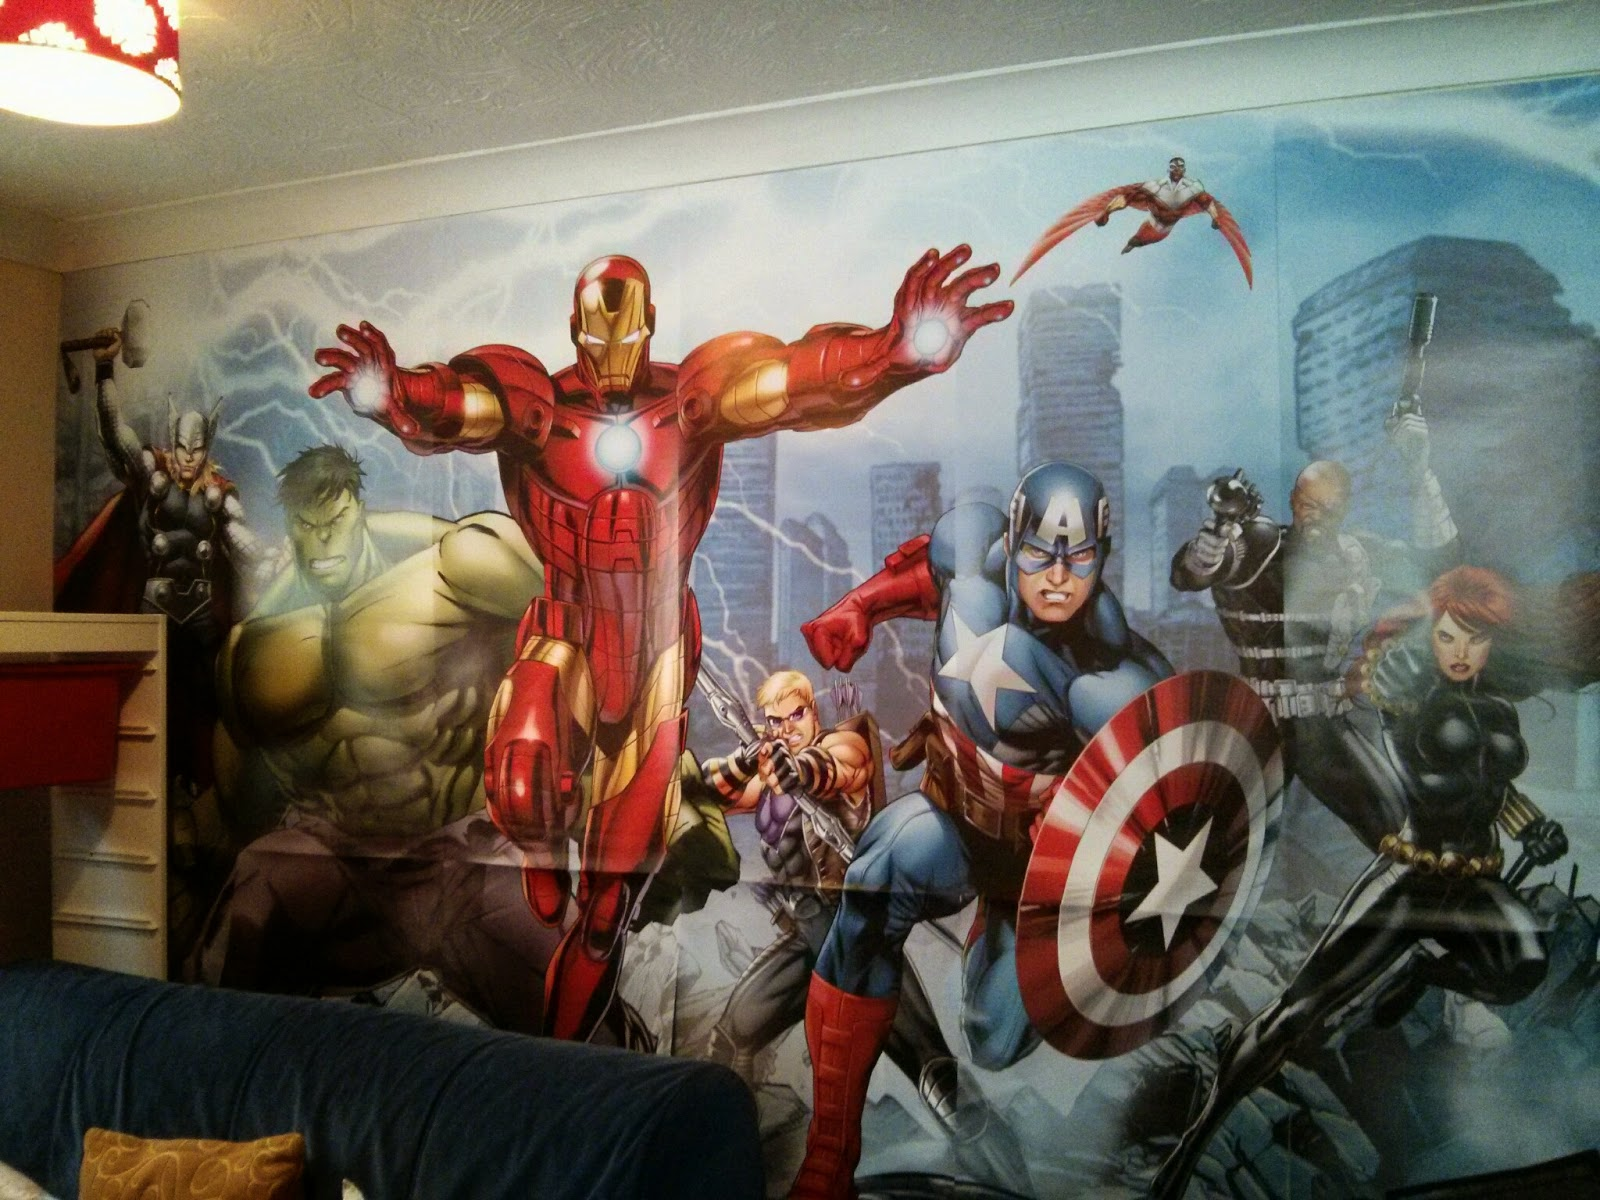 Marvels The Avengers Walltastic Mural from Dulux Bedroom In A Box